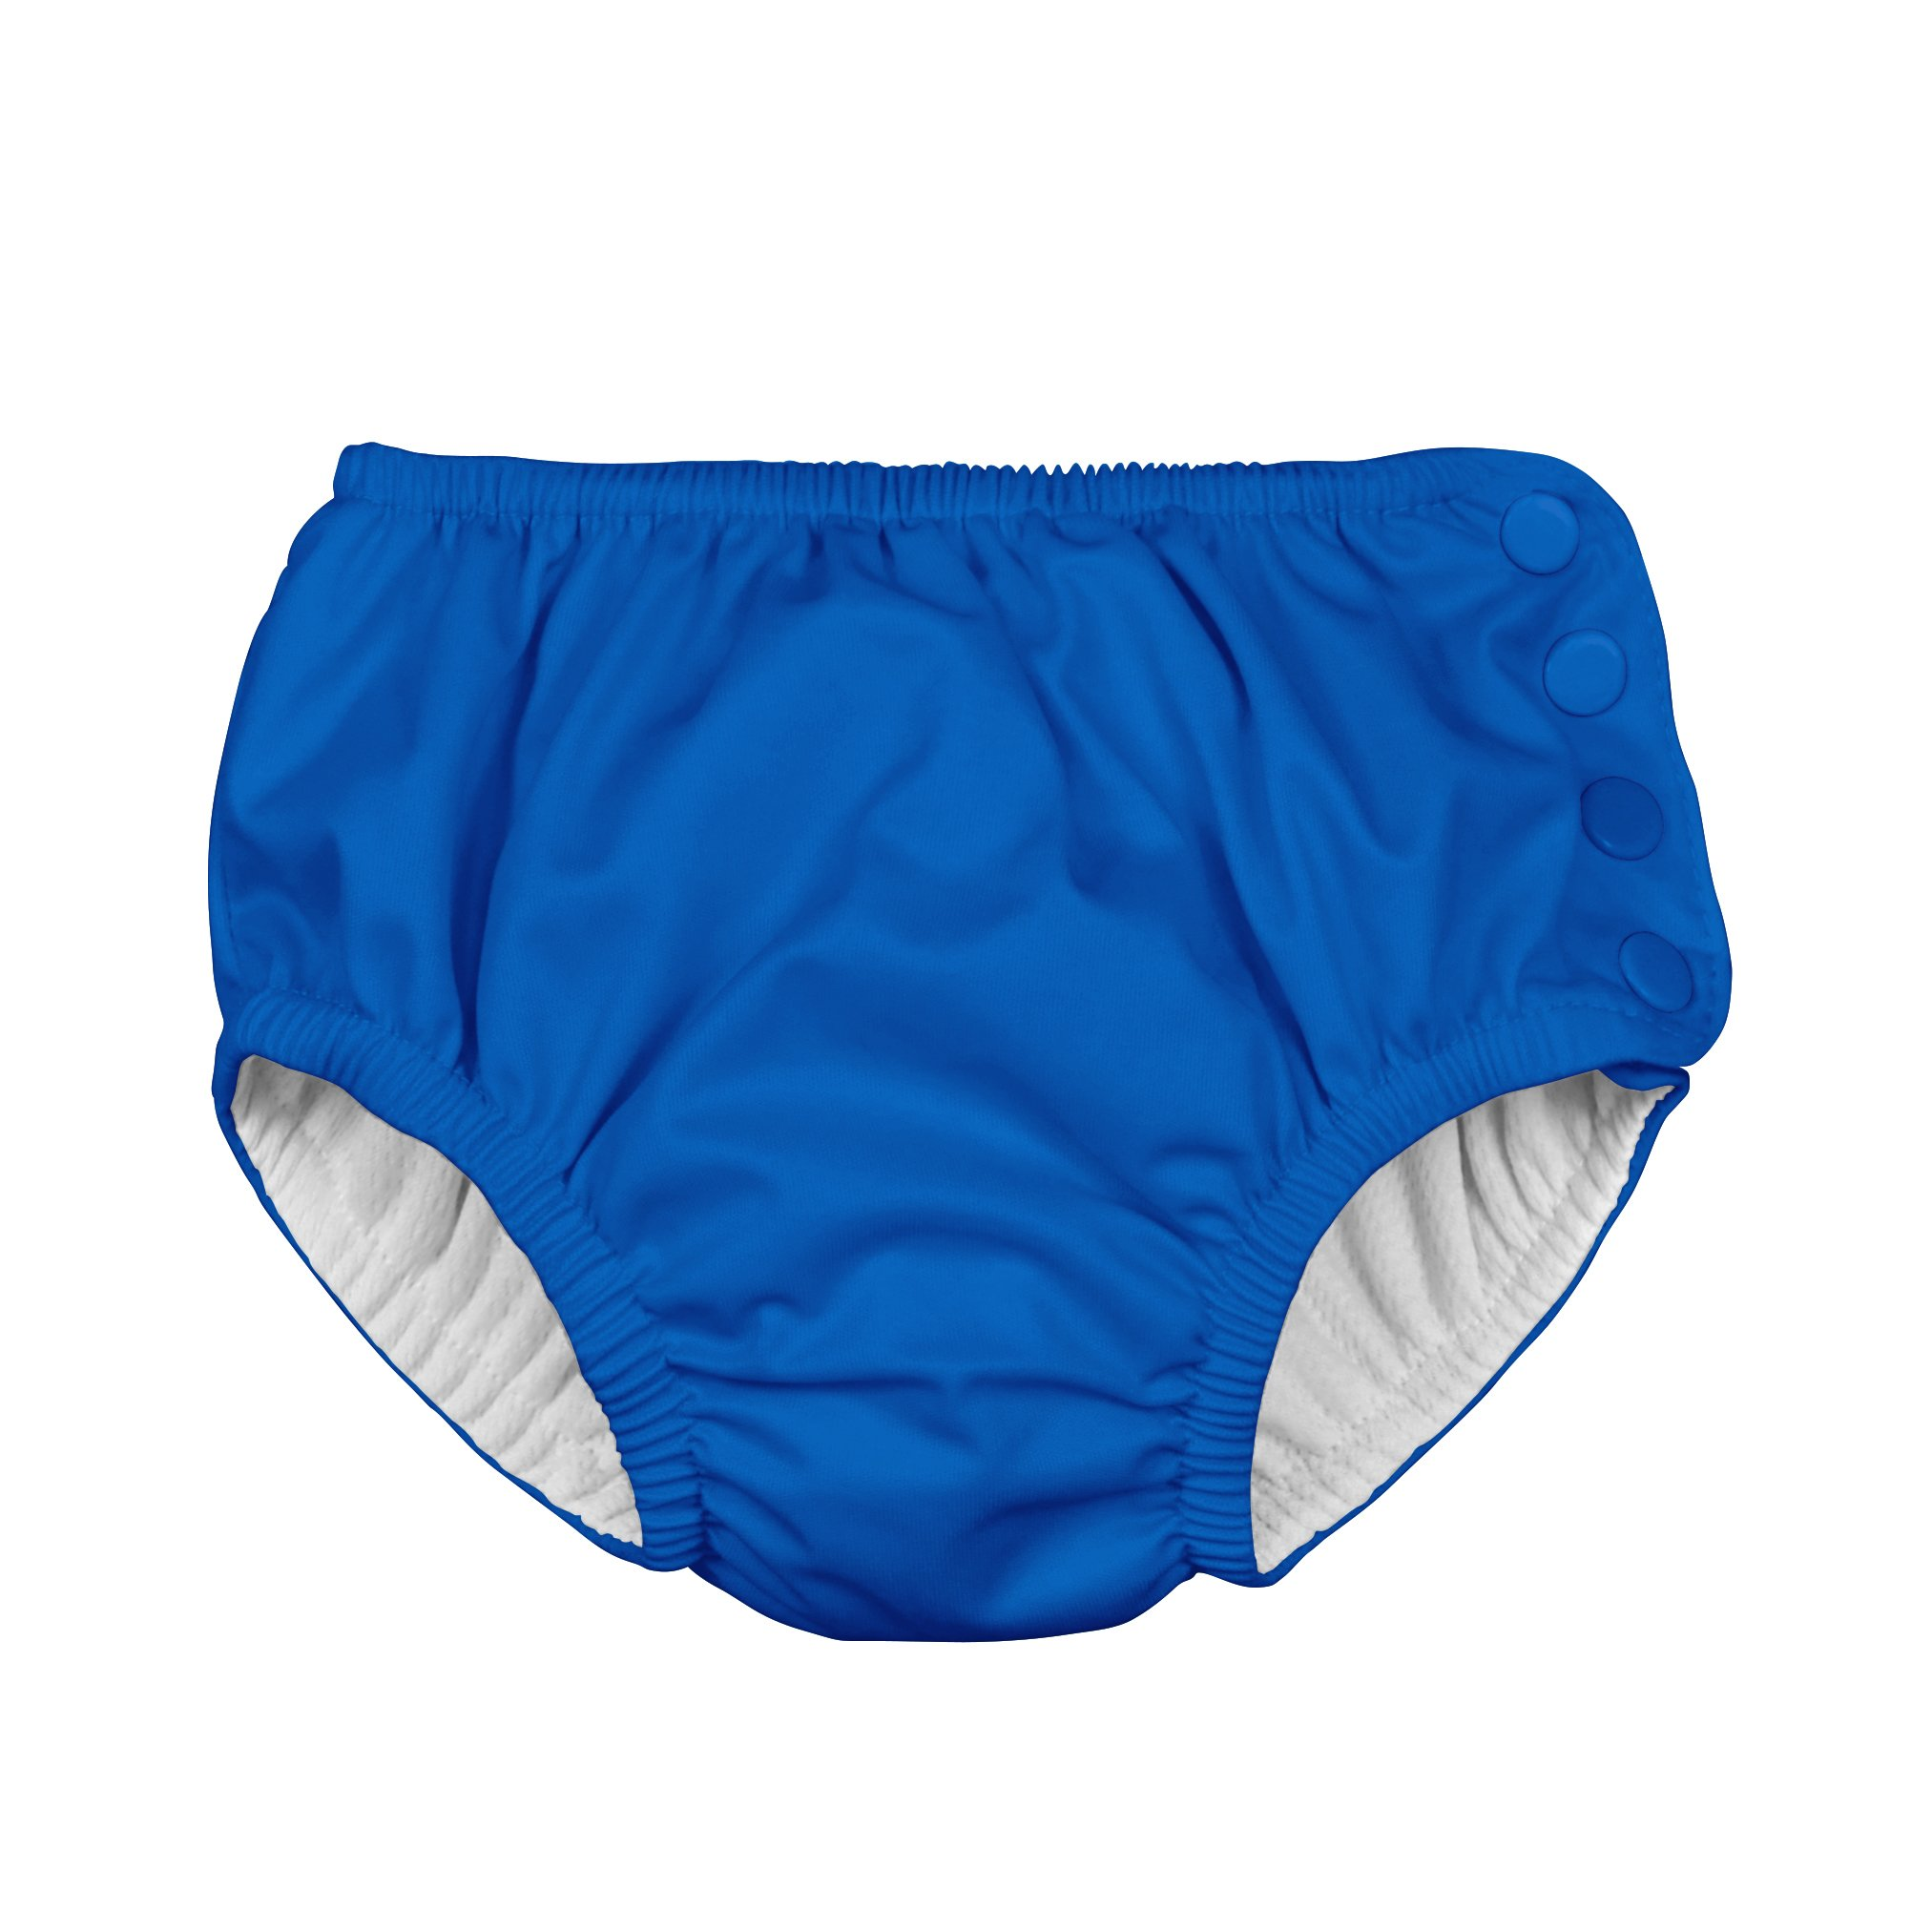 Iplay Swimsuit Diaper-Royal Blue-4T